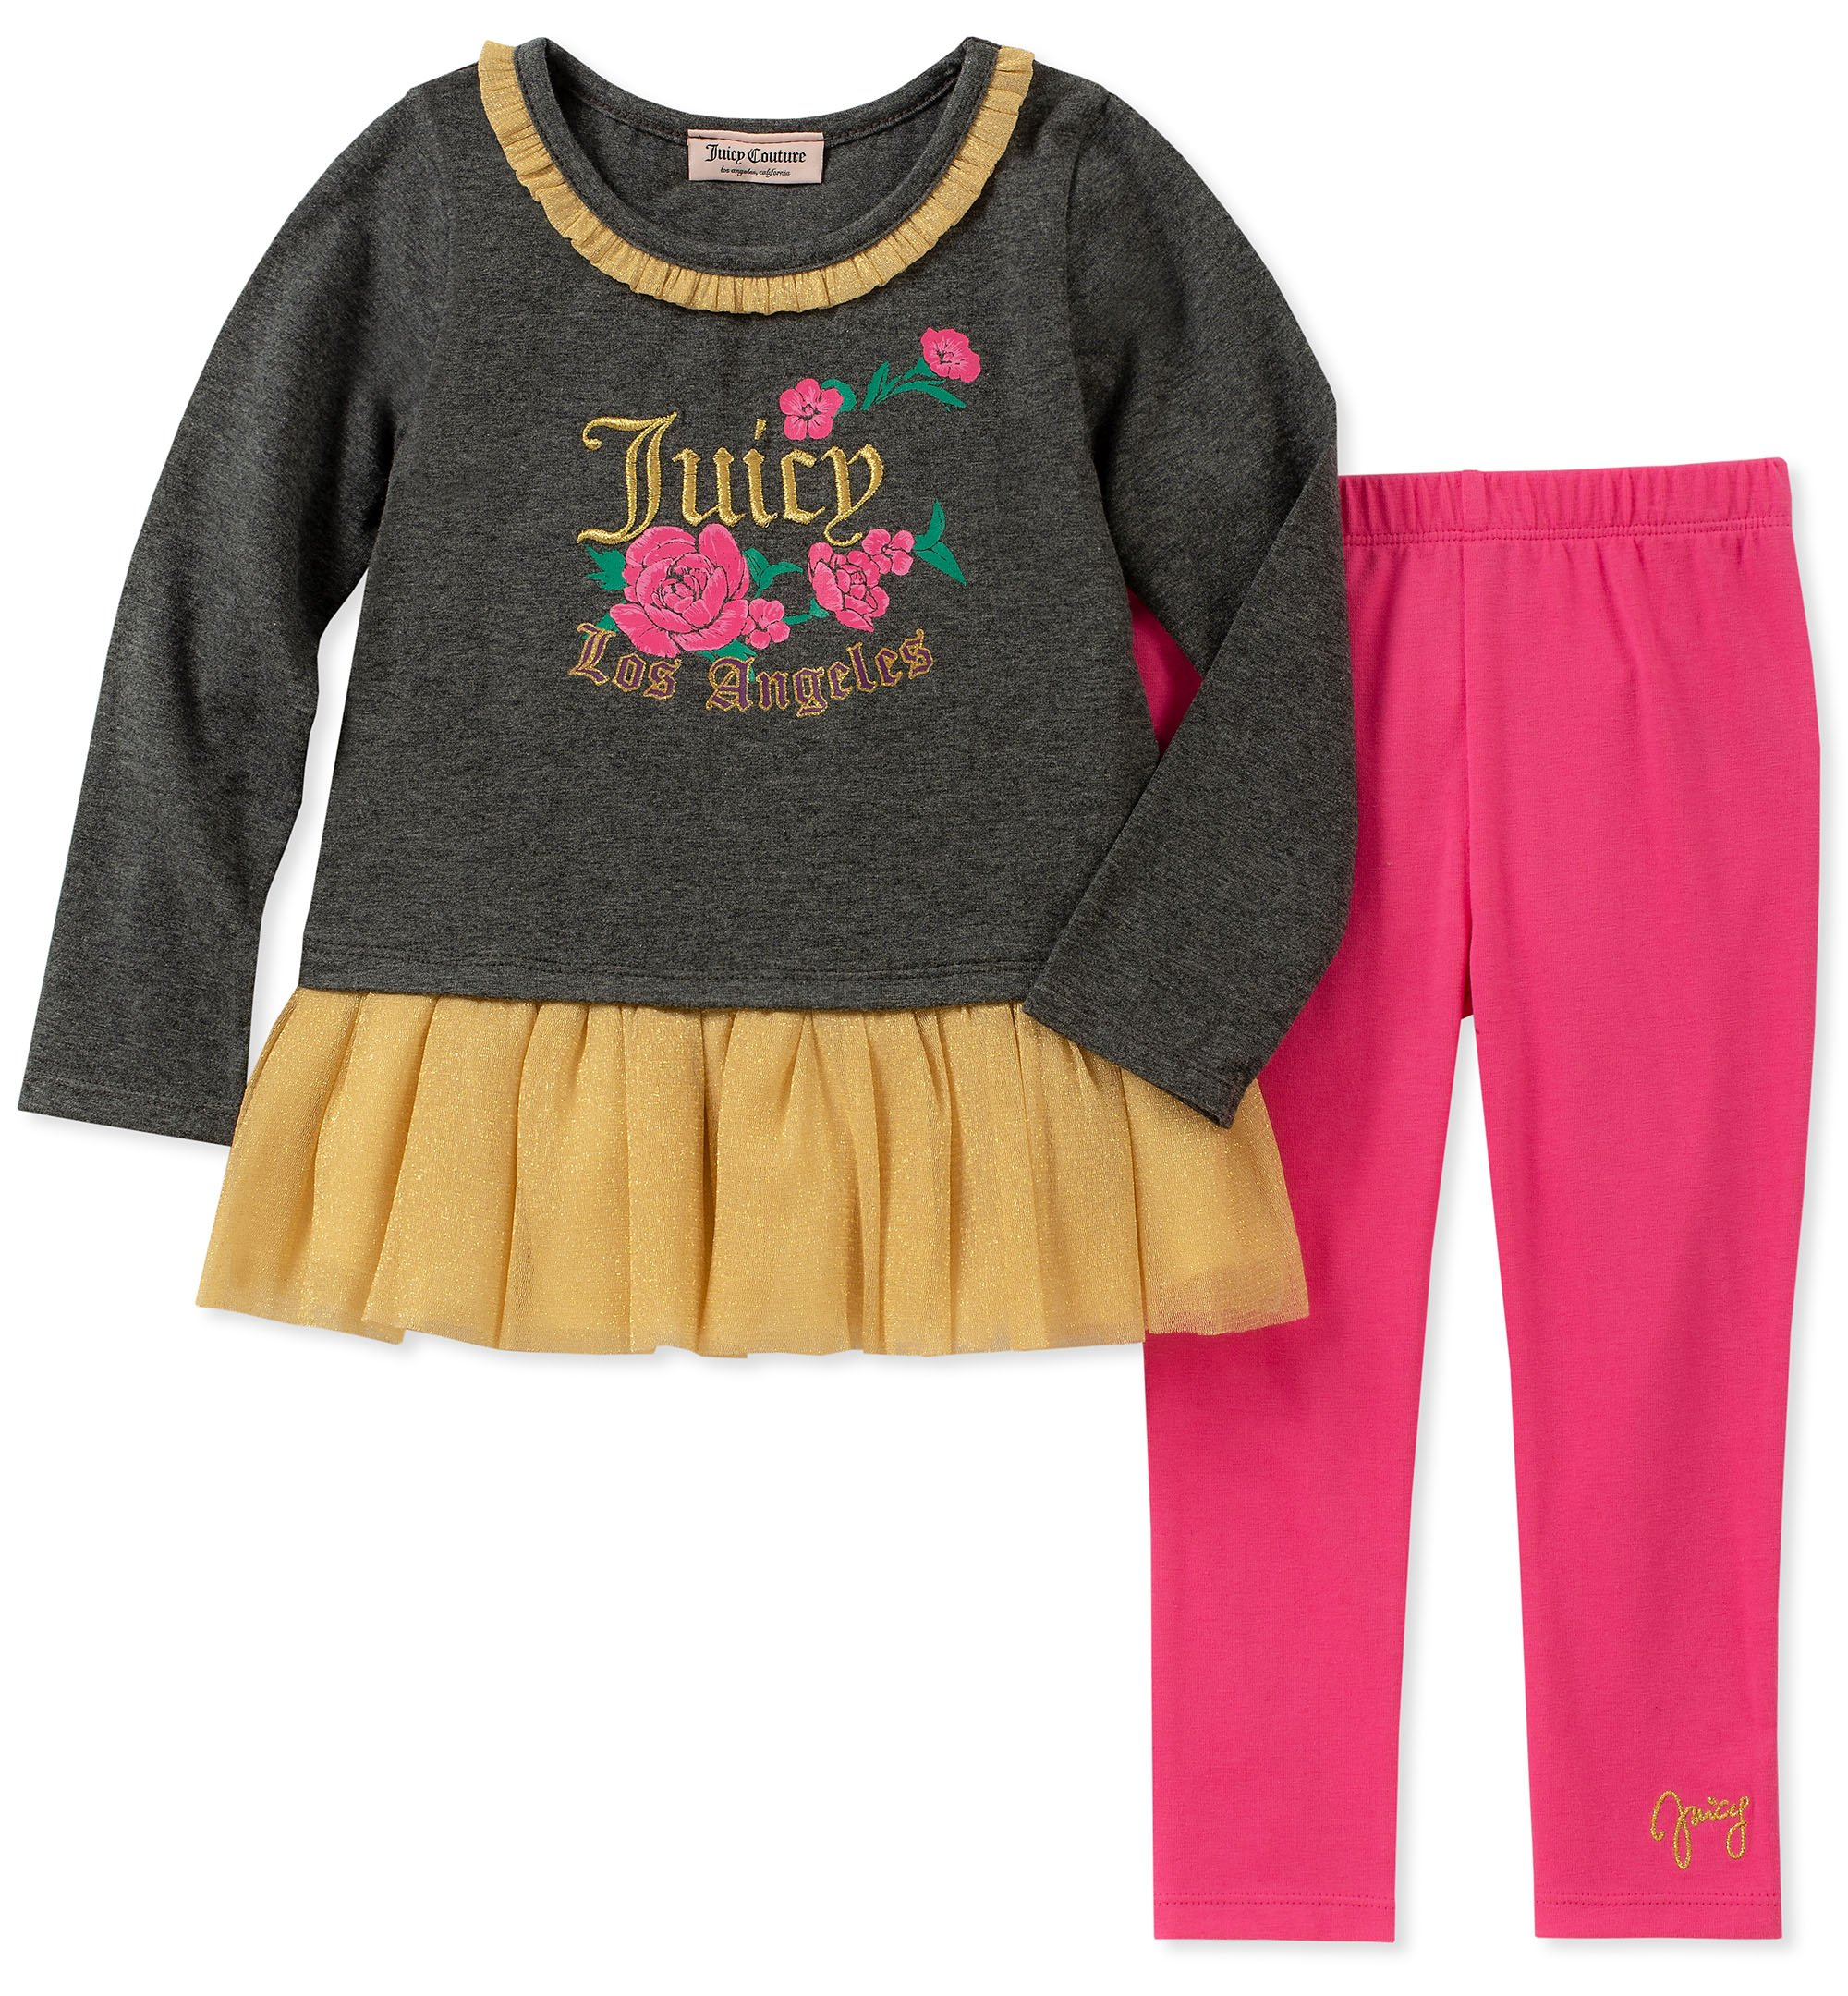 Juicy Couture Girls' Big 2 Pieces Tunic Legging Set, Gray/Gold/Pink, 12